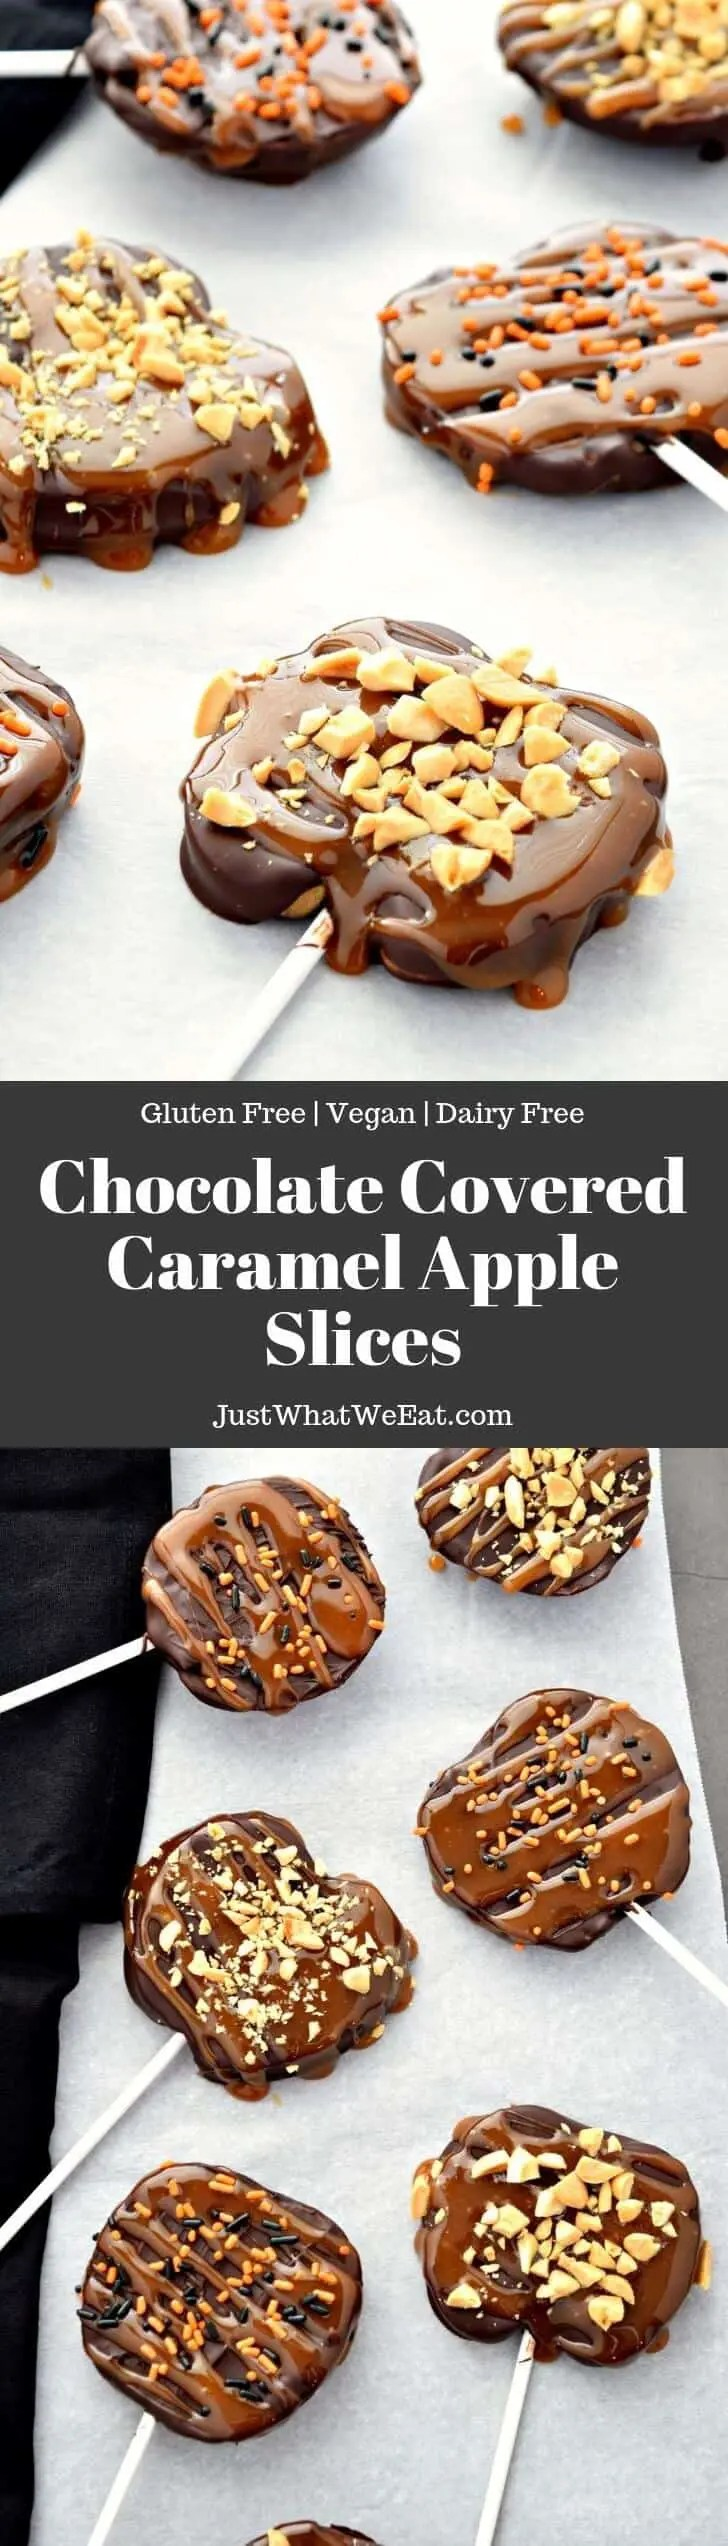 Nothing quite says Fall like Caramel Apples! These Chocolate Covered Caramel Apple Slices are a delicious take on traditional caramel apples. They are gluten free, vegan, and taste incredible!